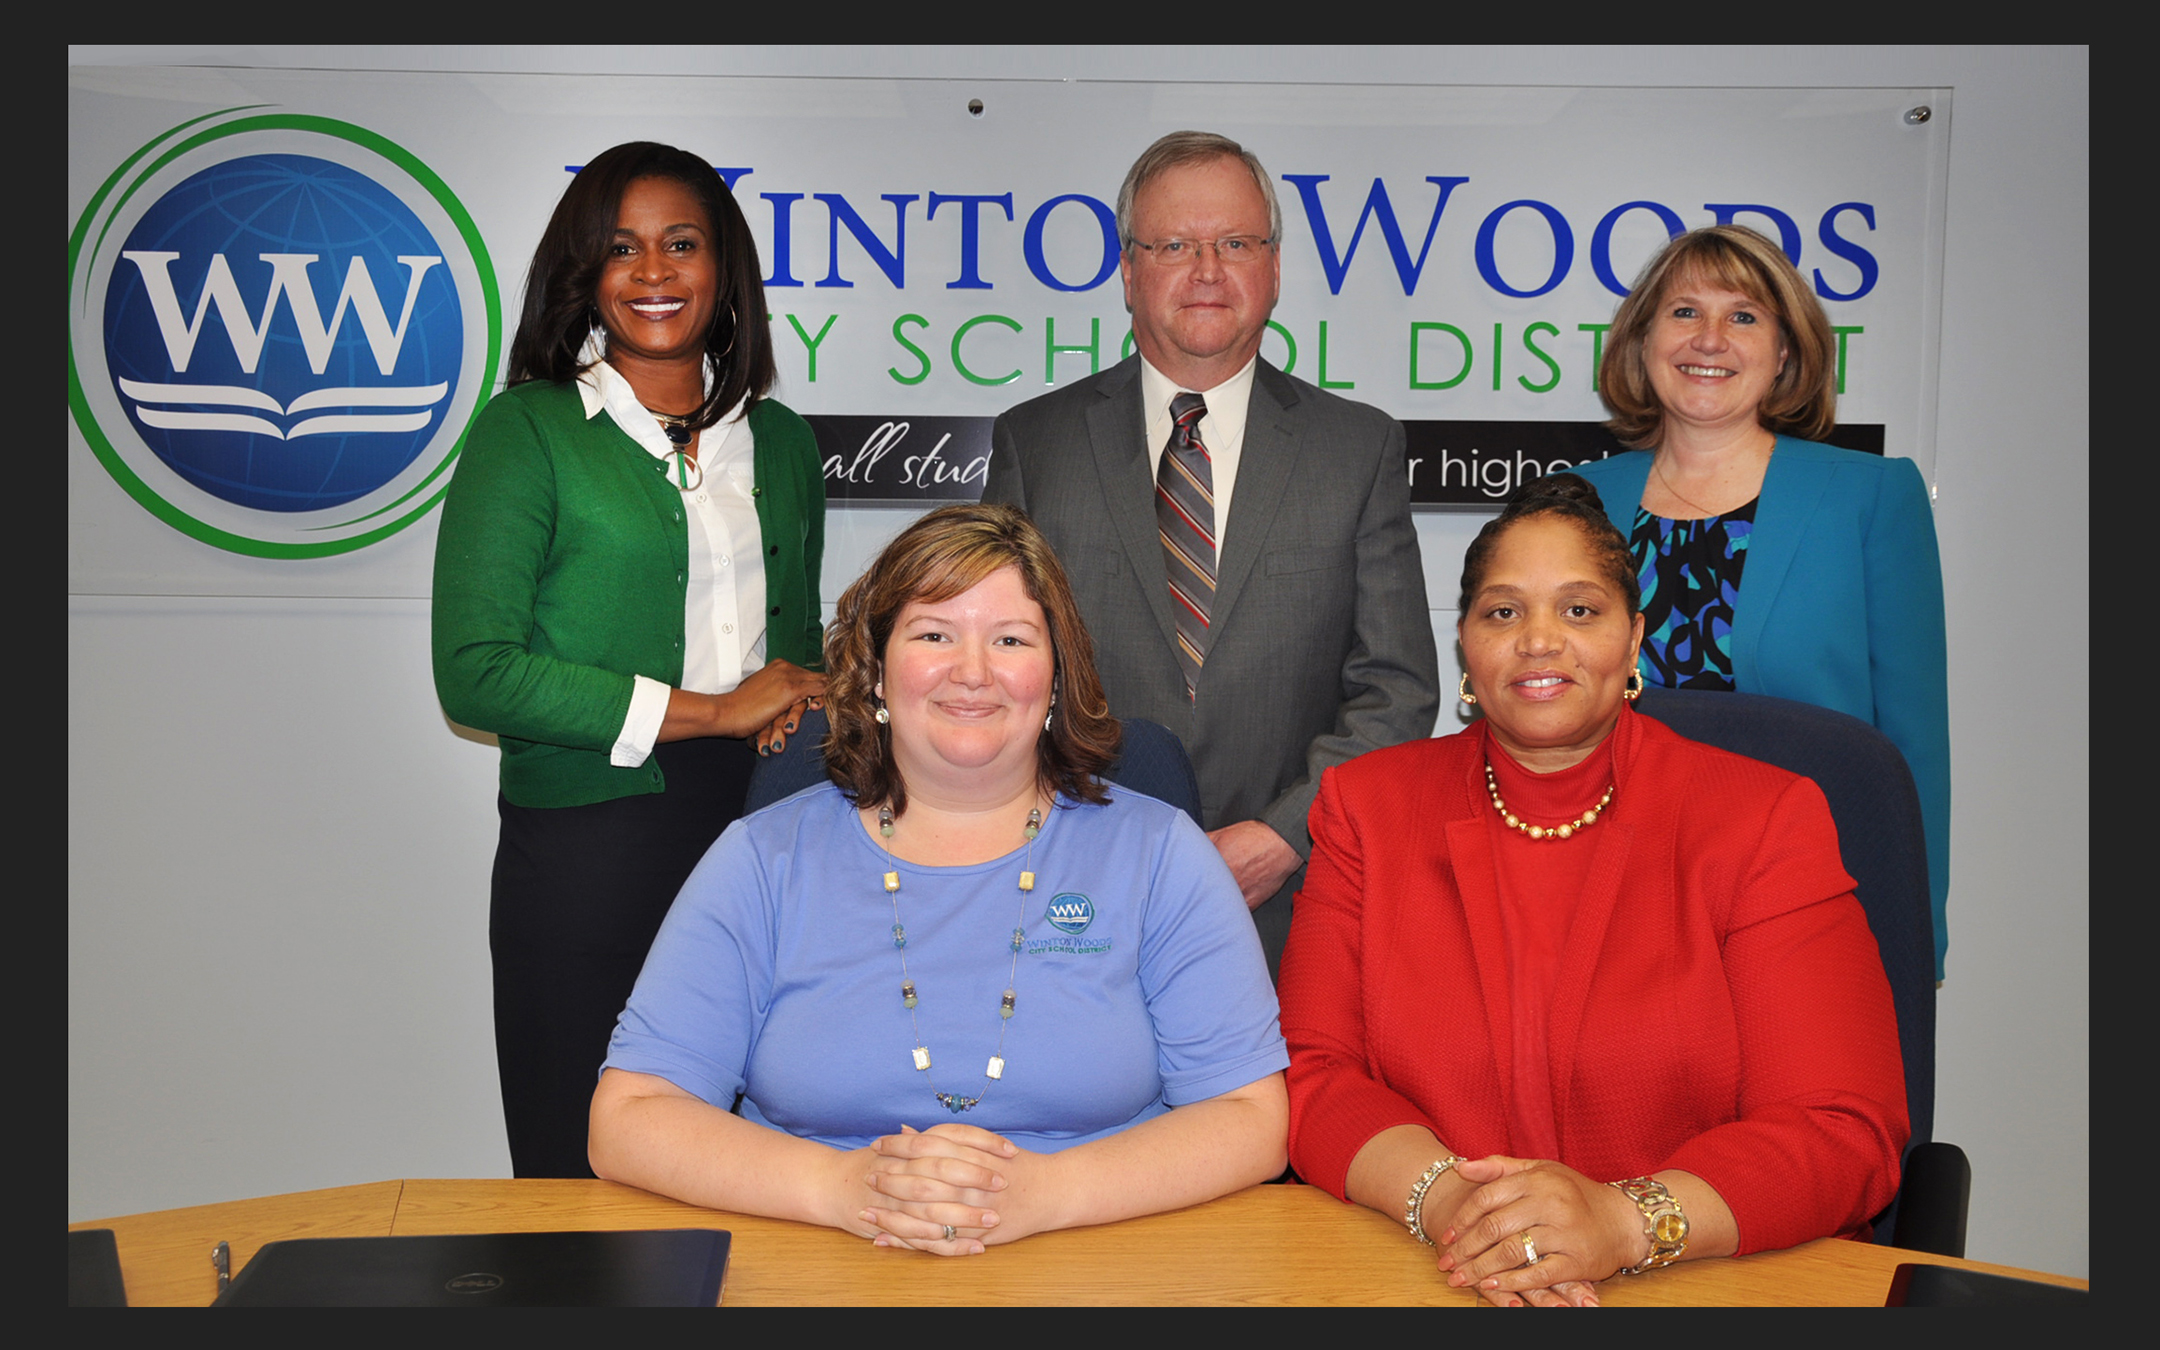 Members of the Winton Woods board of education